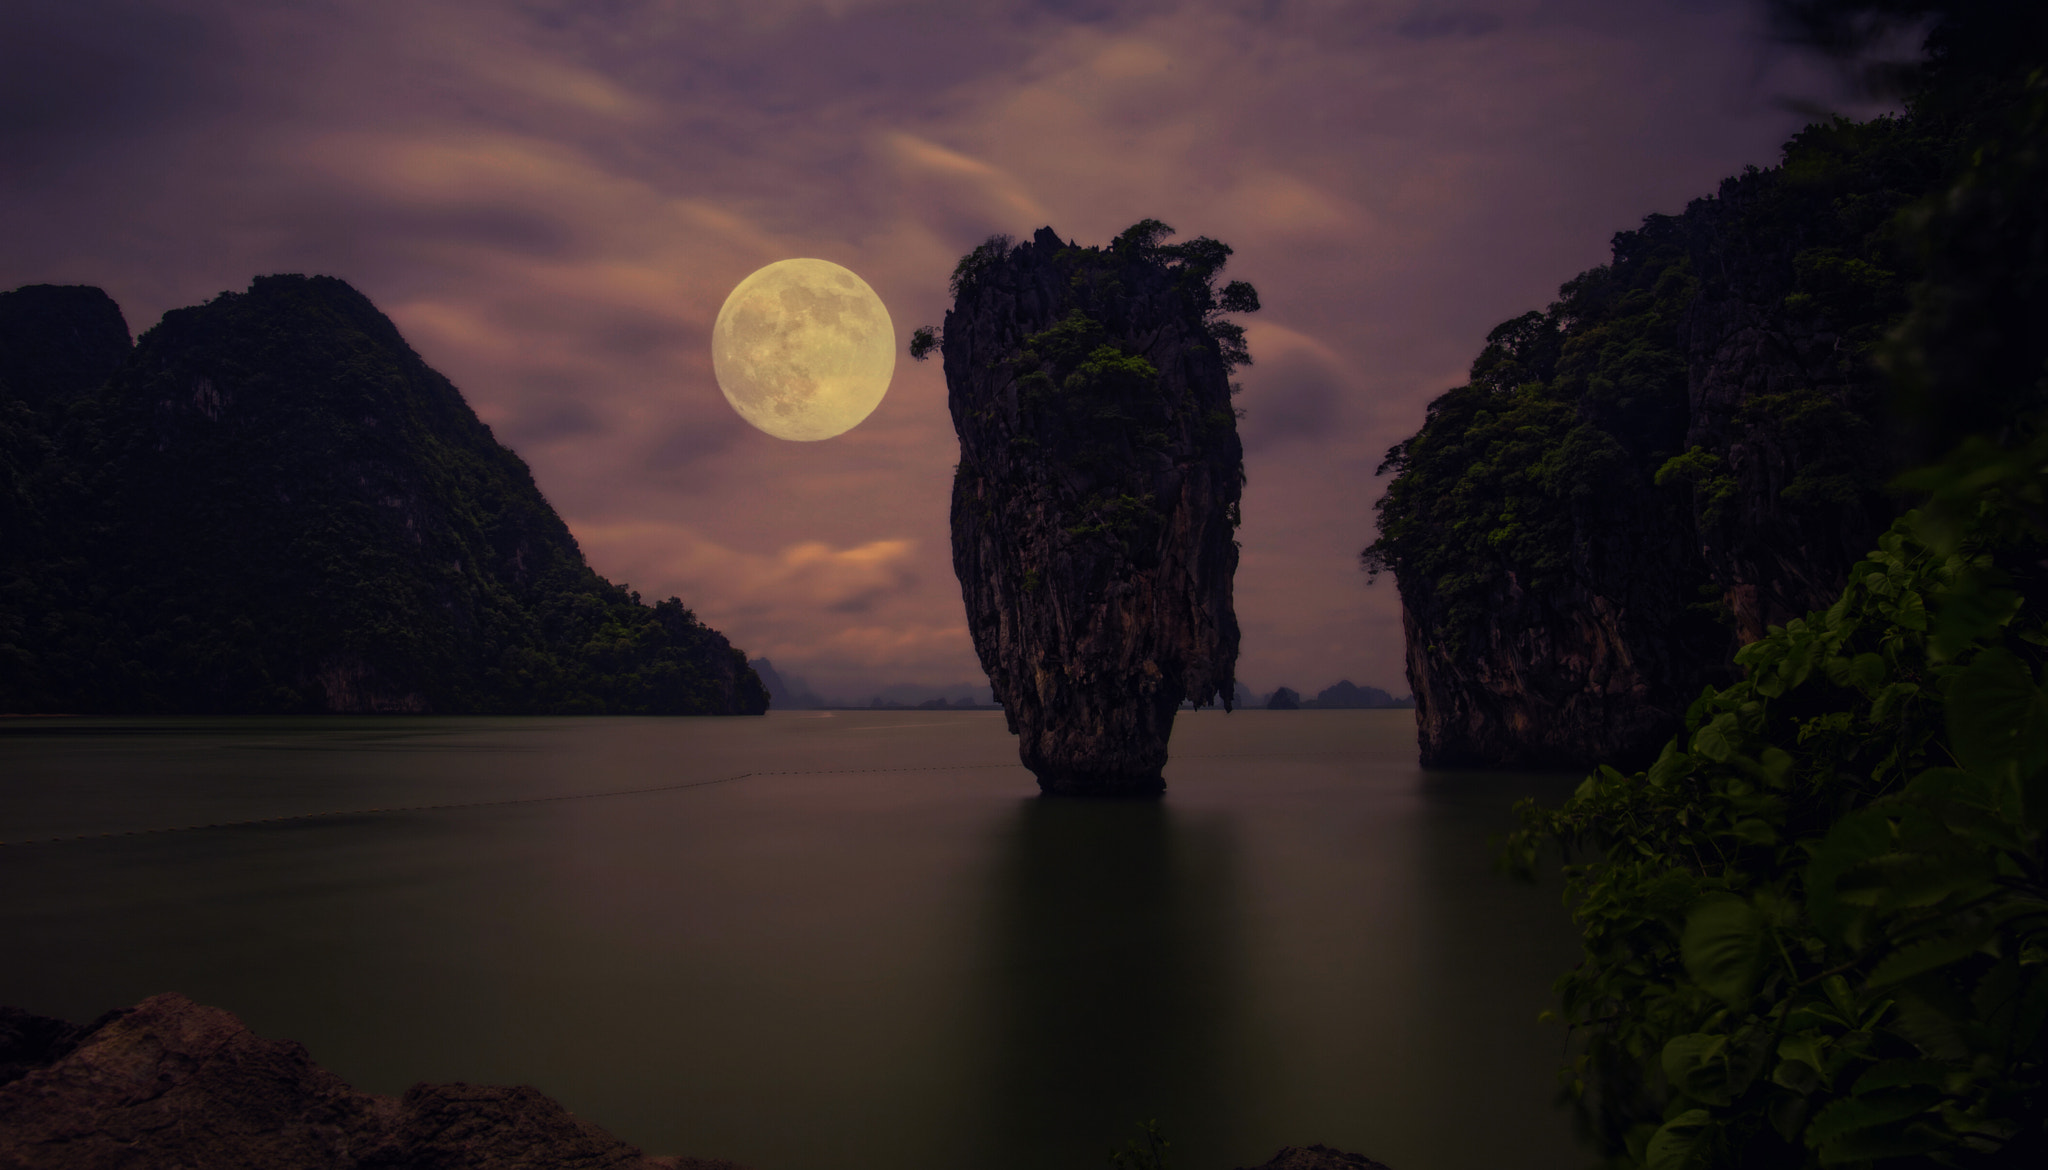 Photograph Full moon by Prithvi Poosapati on 500px